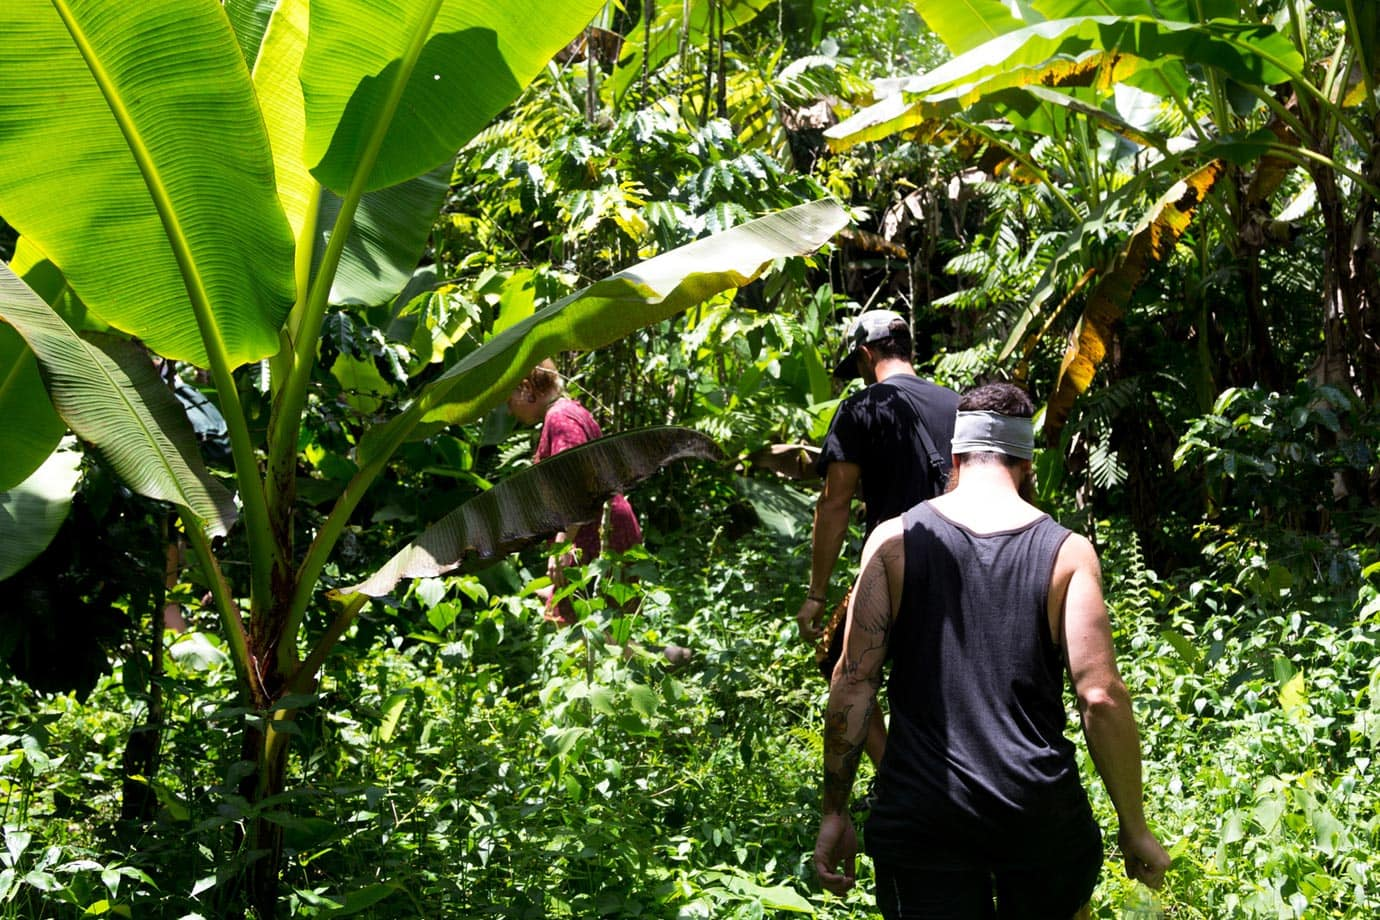 From the second waterfall to the third, we walked through a small coffee plantation